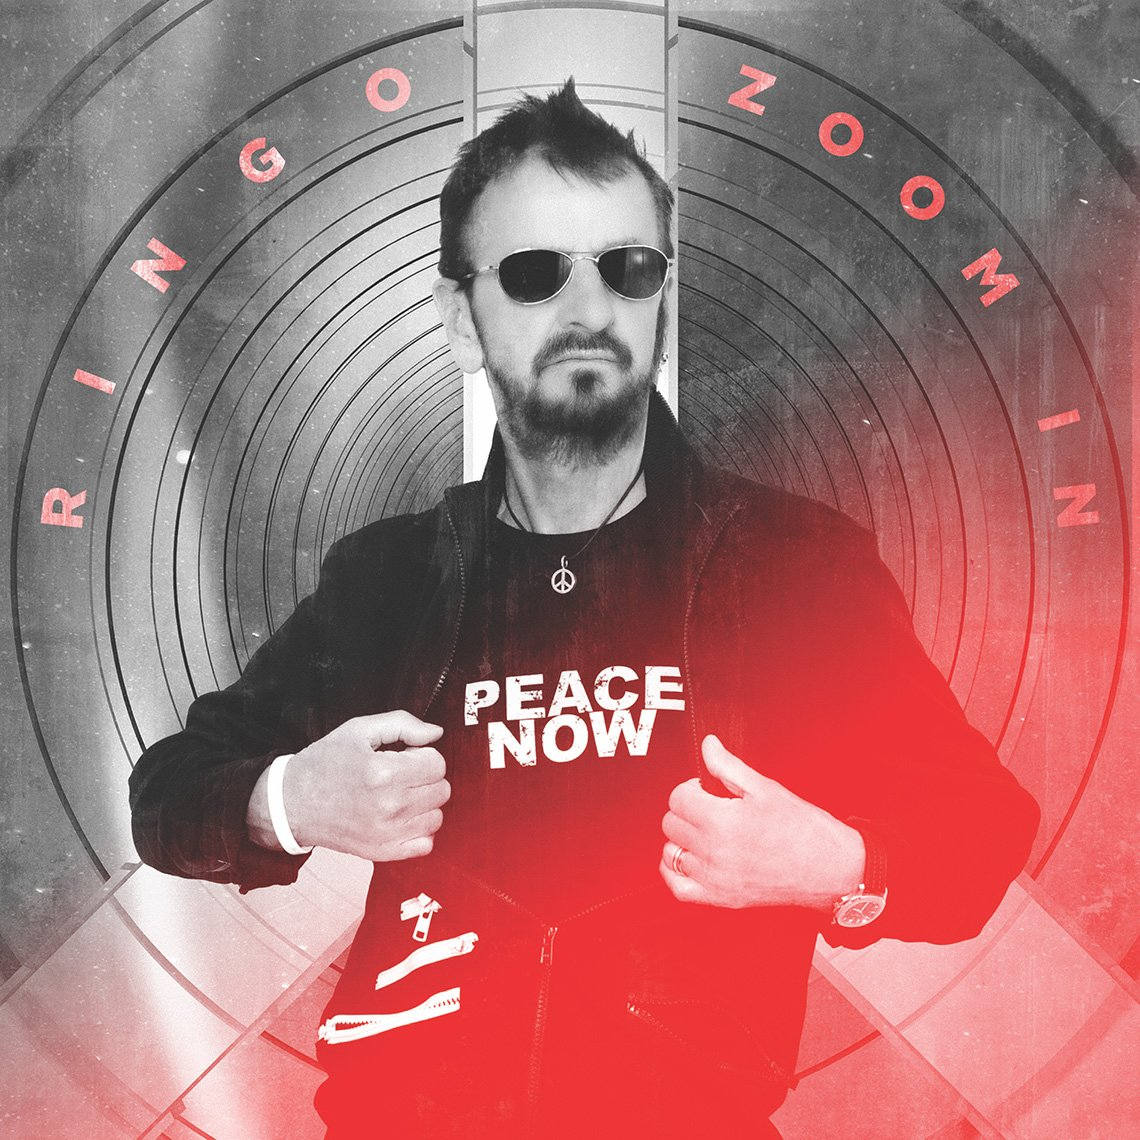 Ringo Starr wearing a Peace Now shirt for the cover art of his EP Zoom In